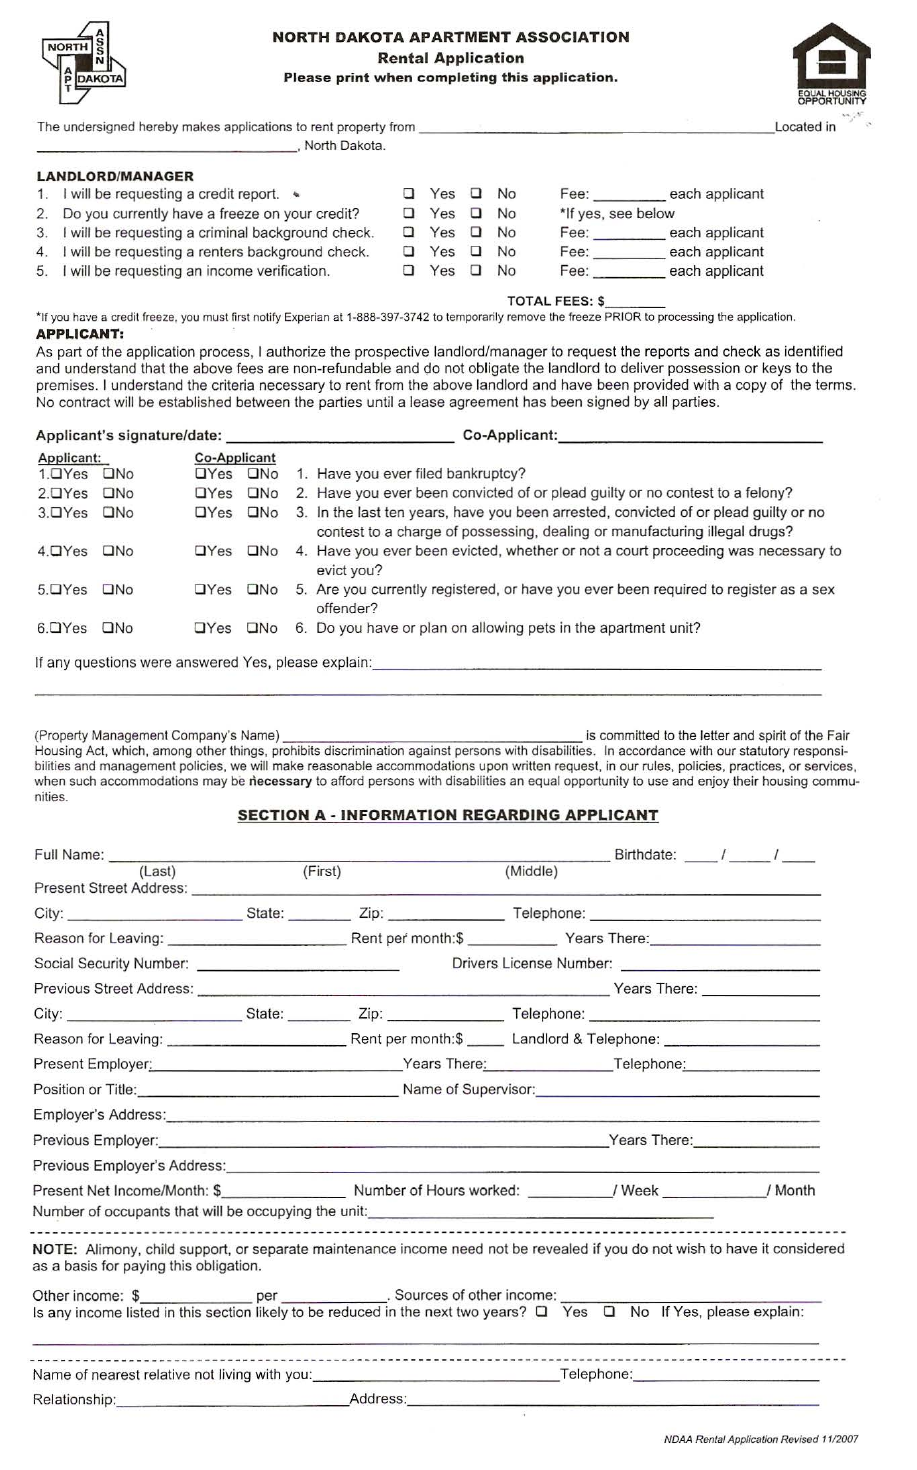 apartment owners association rental application